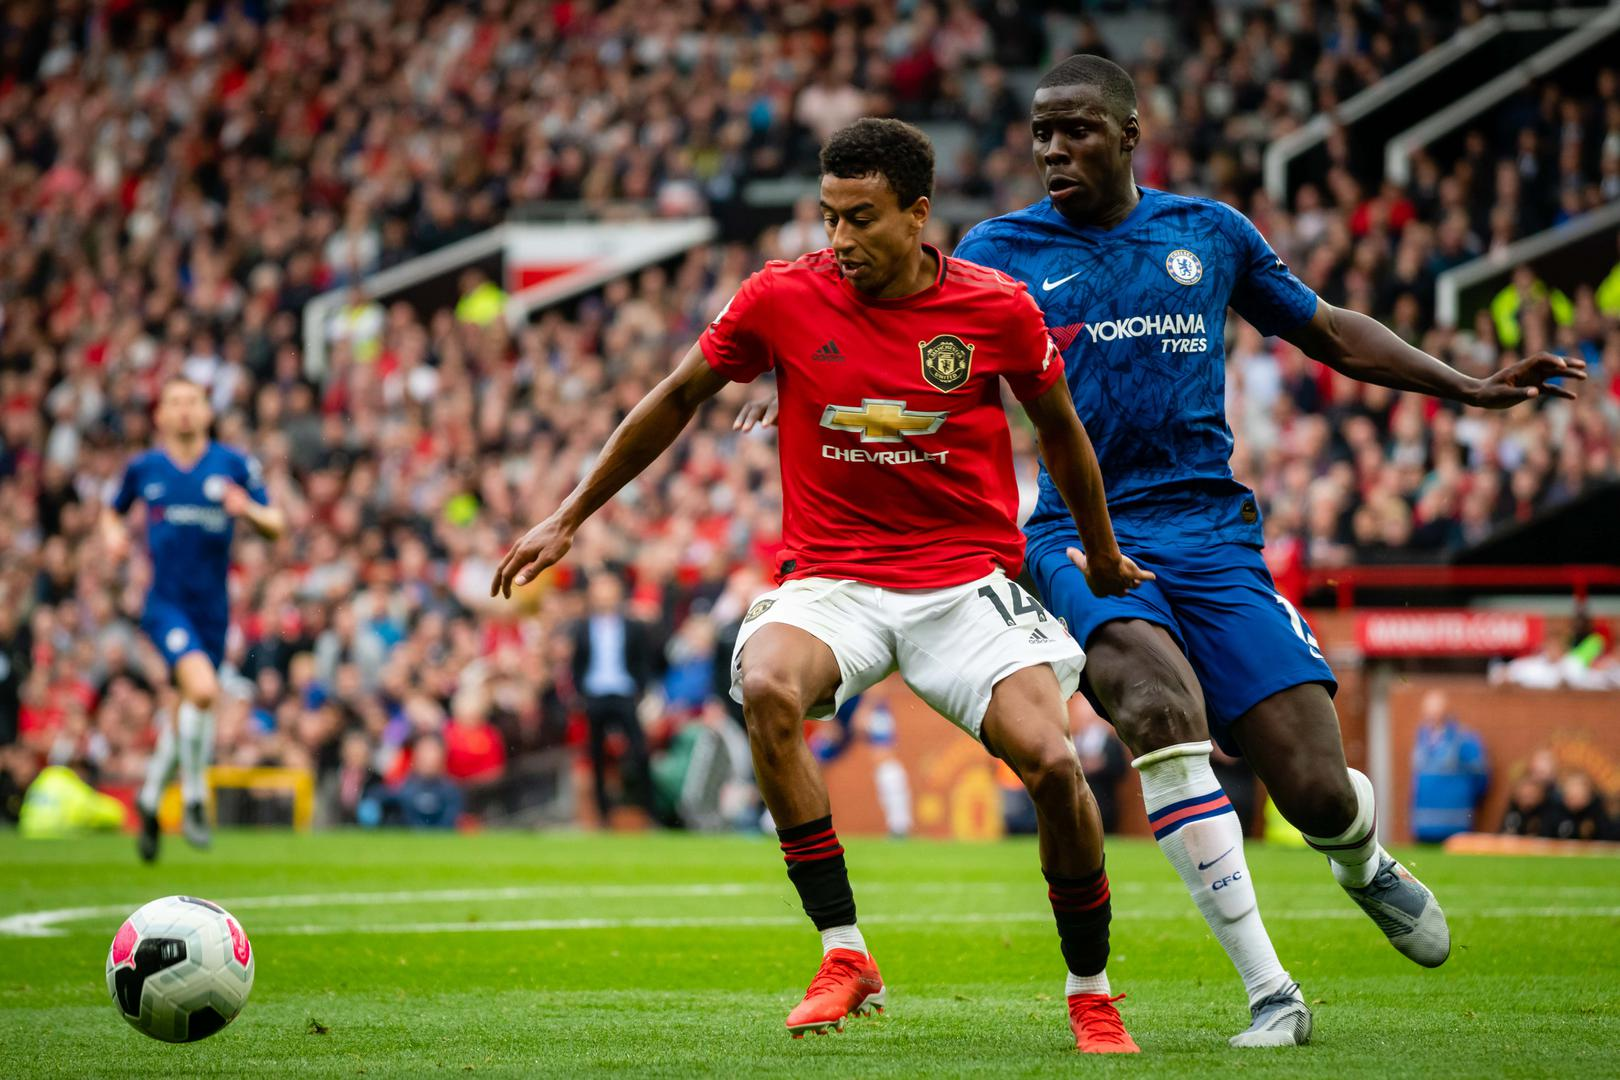 Jesse Lingard challenges Chelsea's Kurt Zouma to the ball.